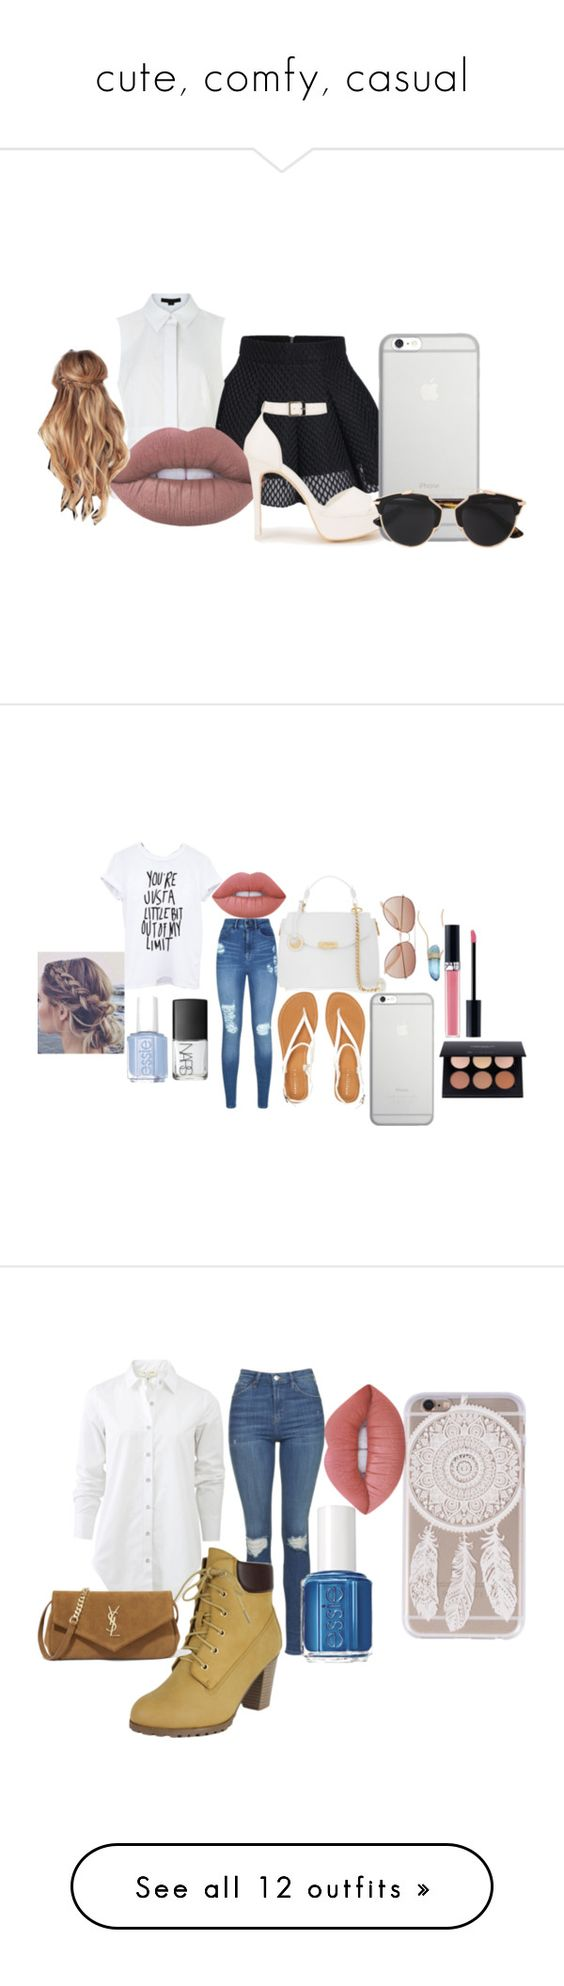 """""""cute, comfy, casual"""" by abrarwoods on Polyvore featuring Alexander Wang, Lime Crime, Nly Shoes, Native Union, Christian Dior, NightOut, girly, Lipsy, Aéropostale and H&M"""